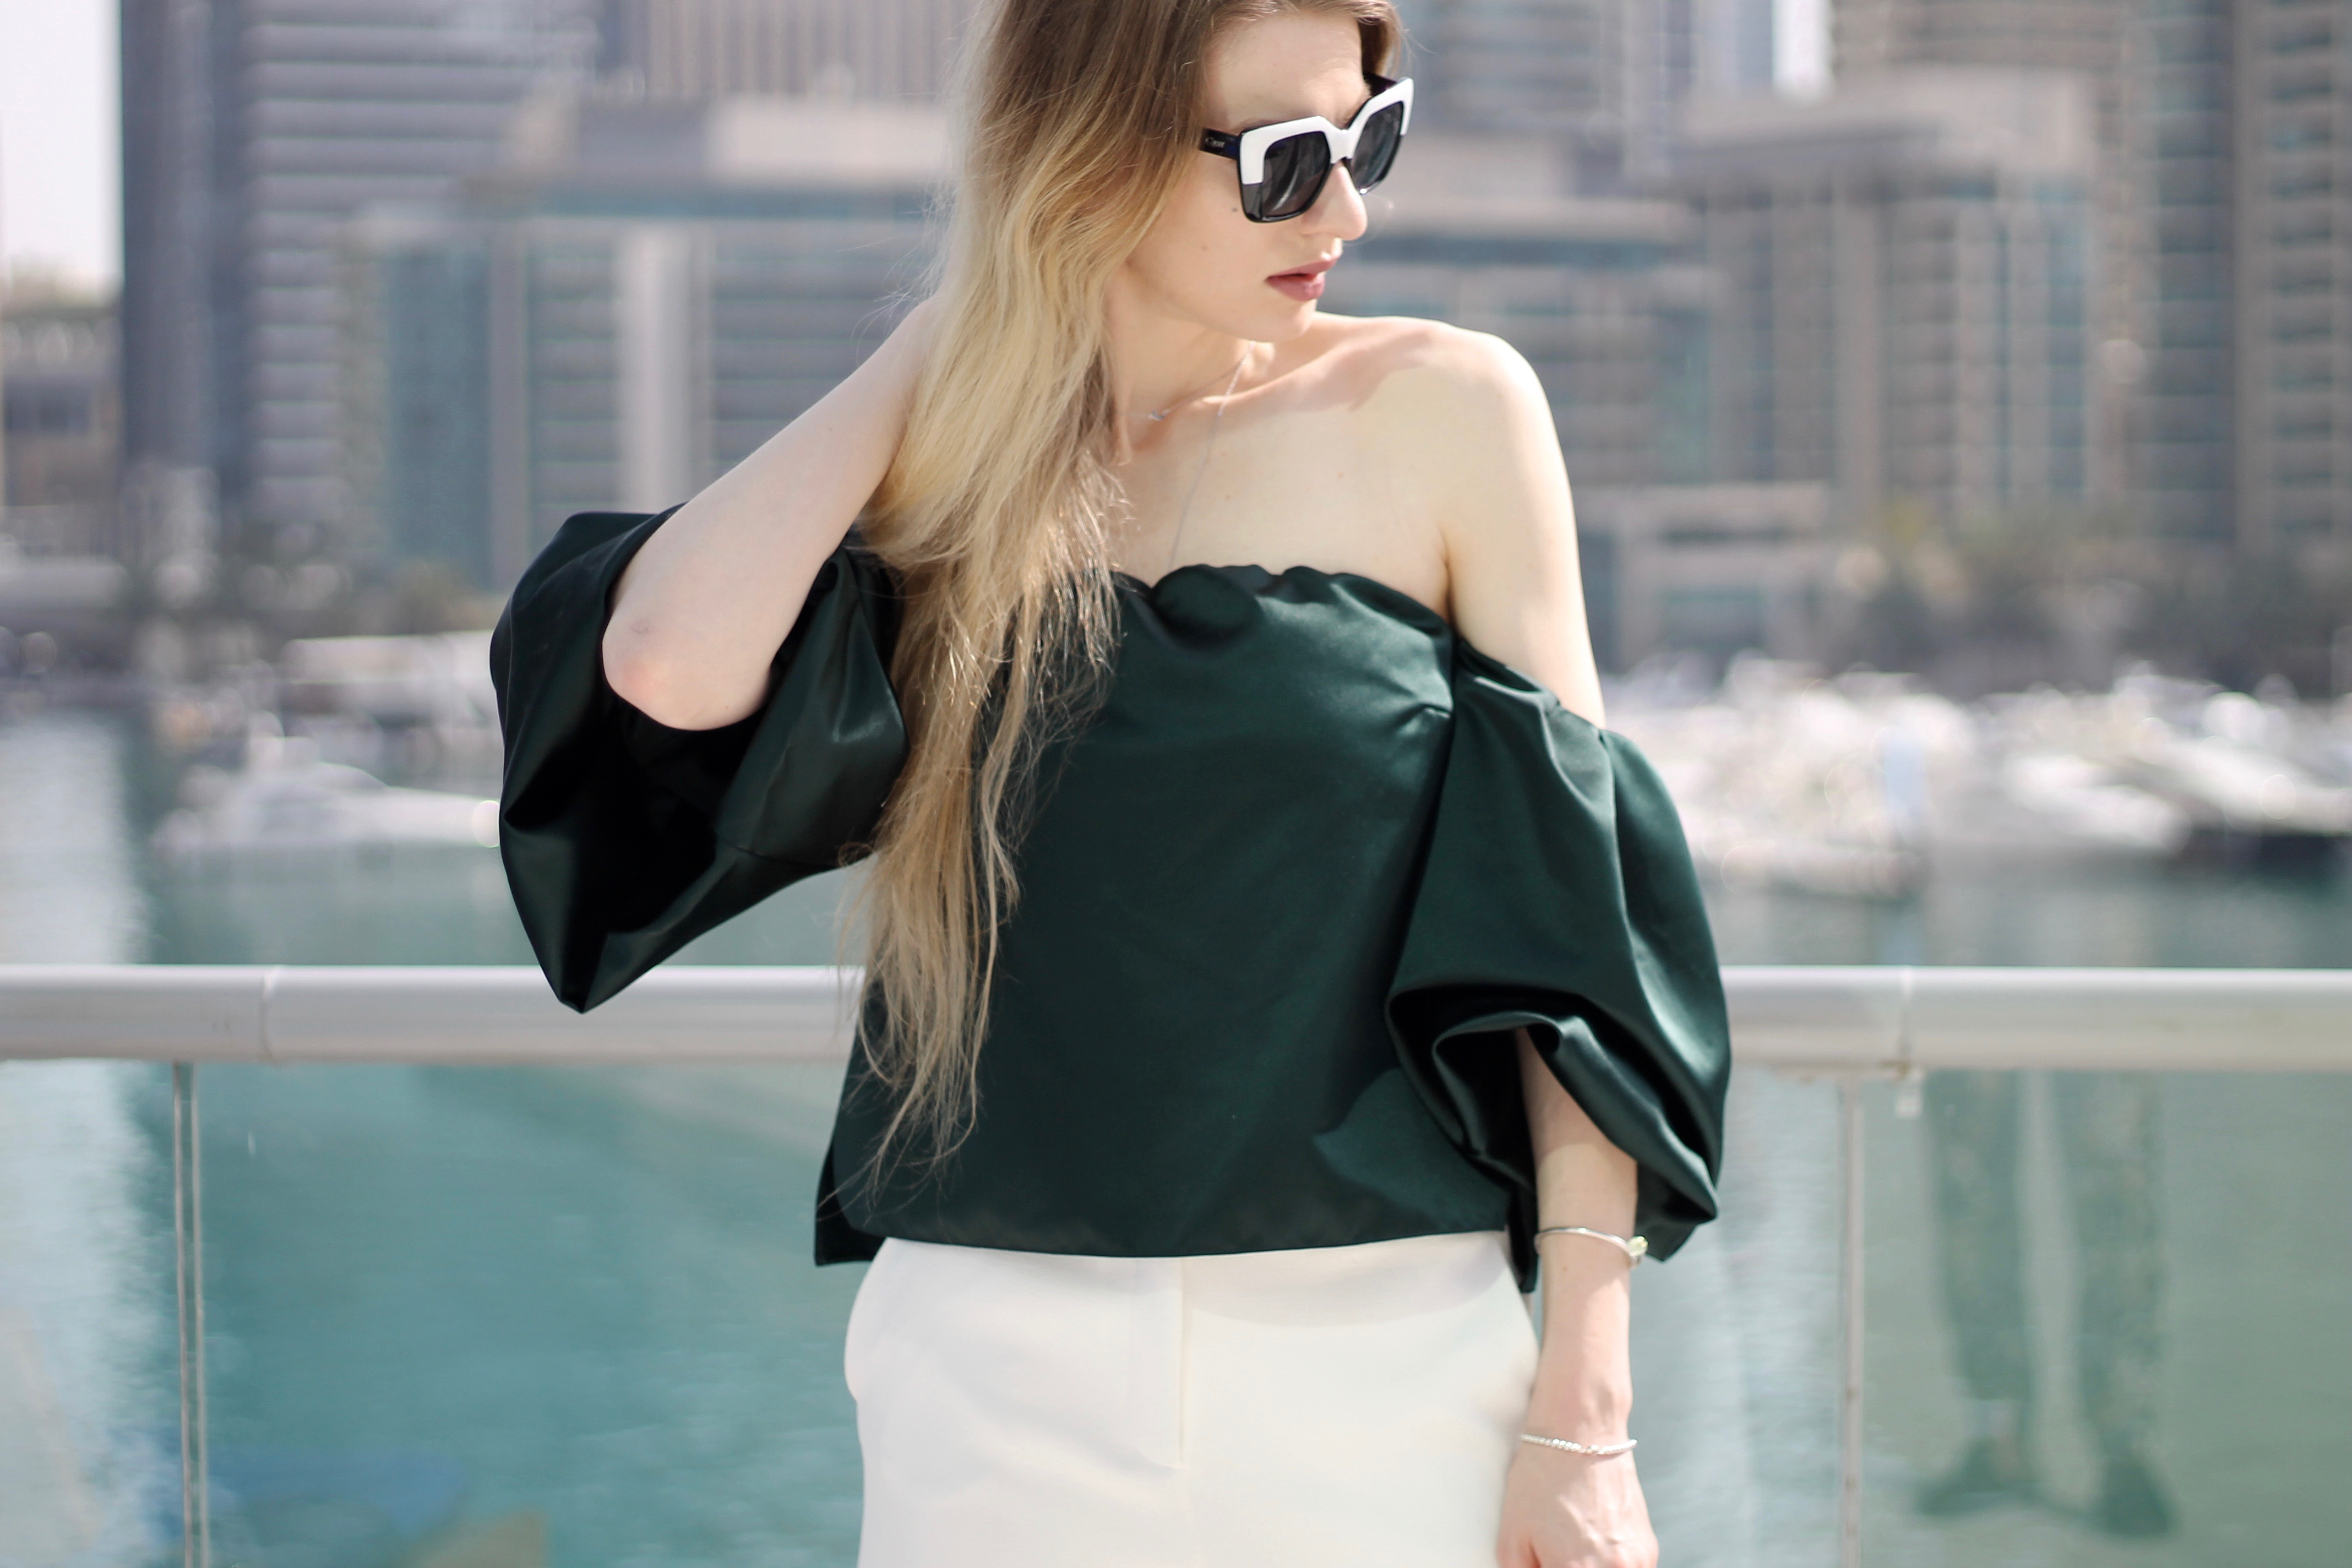 MON MODE Blog | Mon Mode | Fashion Blog | Toronto Bloger | Travel Blog | Glittering Dubai